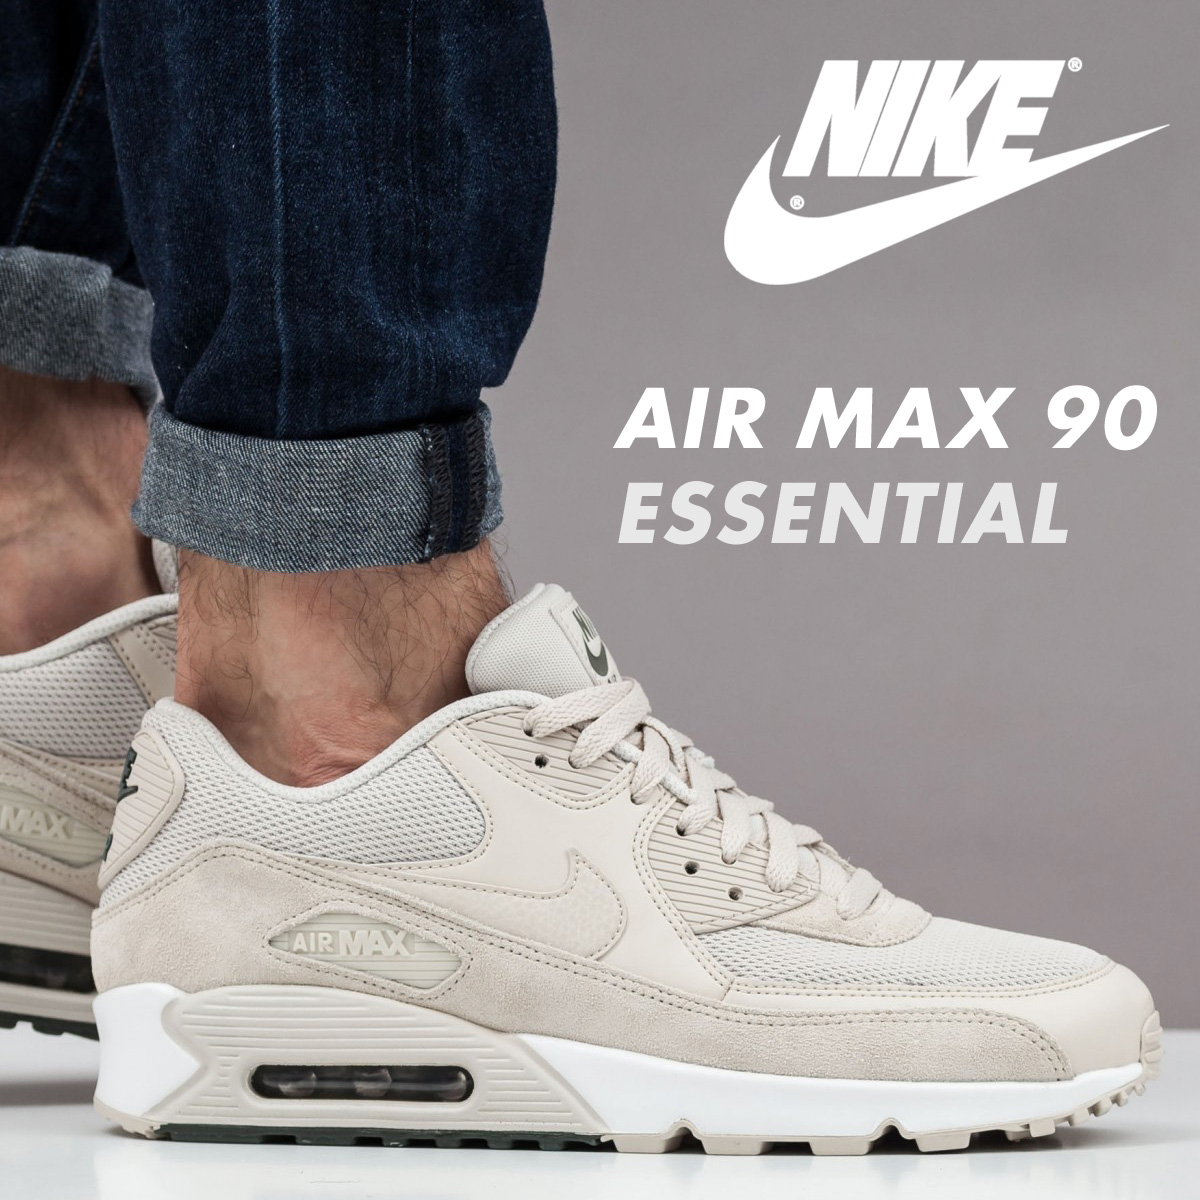 NIKE Kie Ney AMAX 90 essential sneakers AIR MAX 90 ESSENTIAL 537,384 132 men's shoes beige [load planned Shinnyu load in reservation product 824